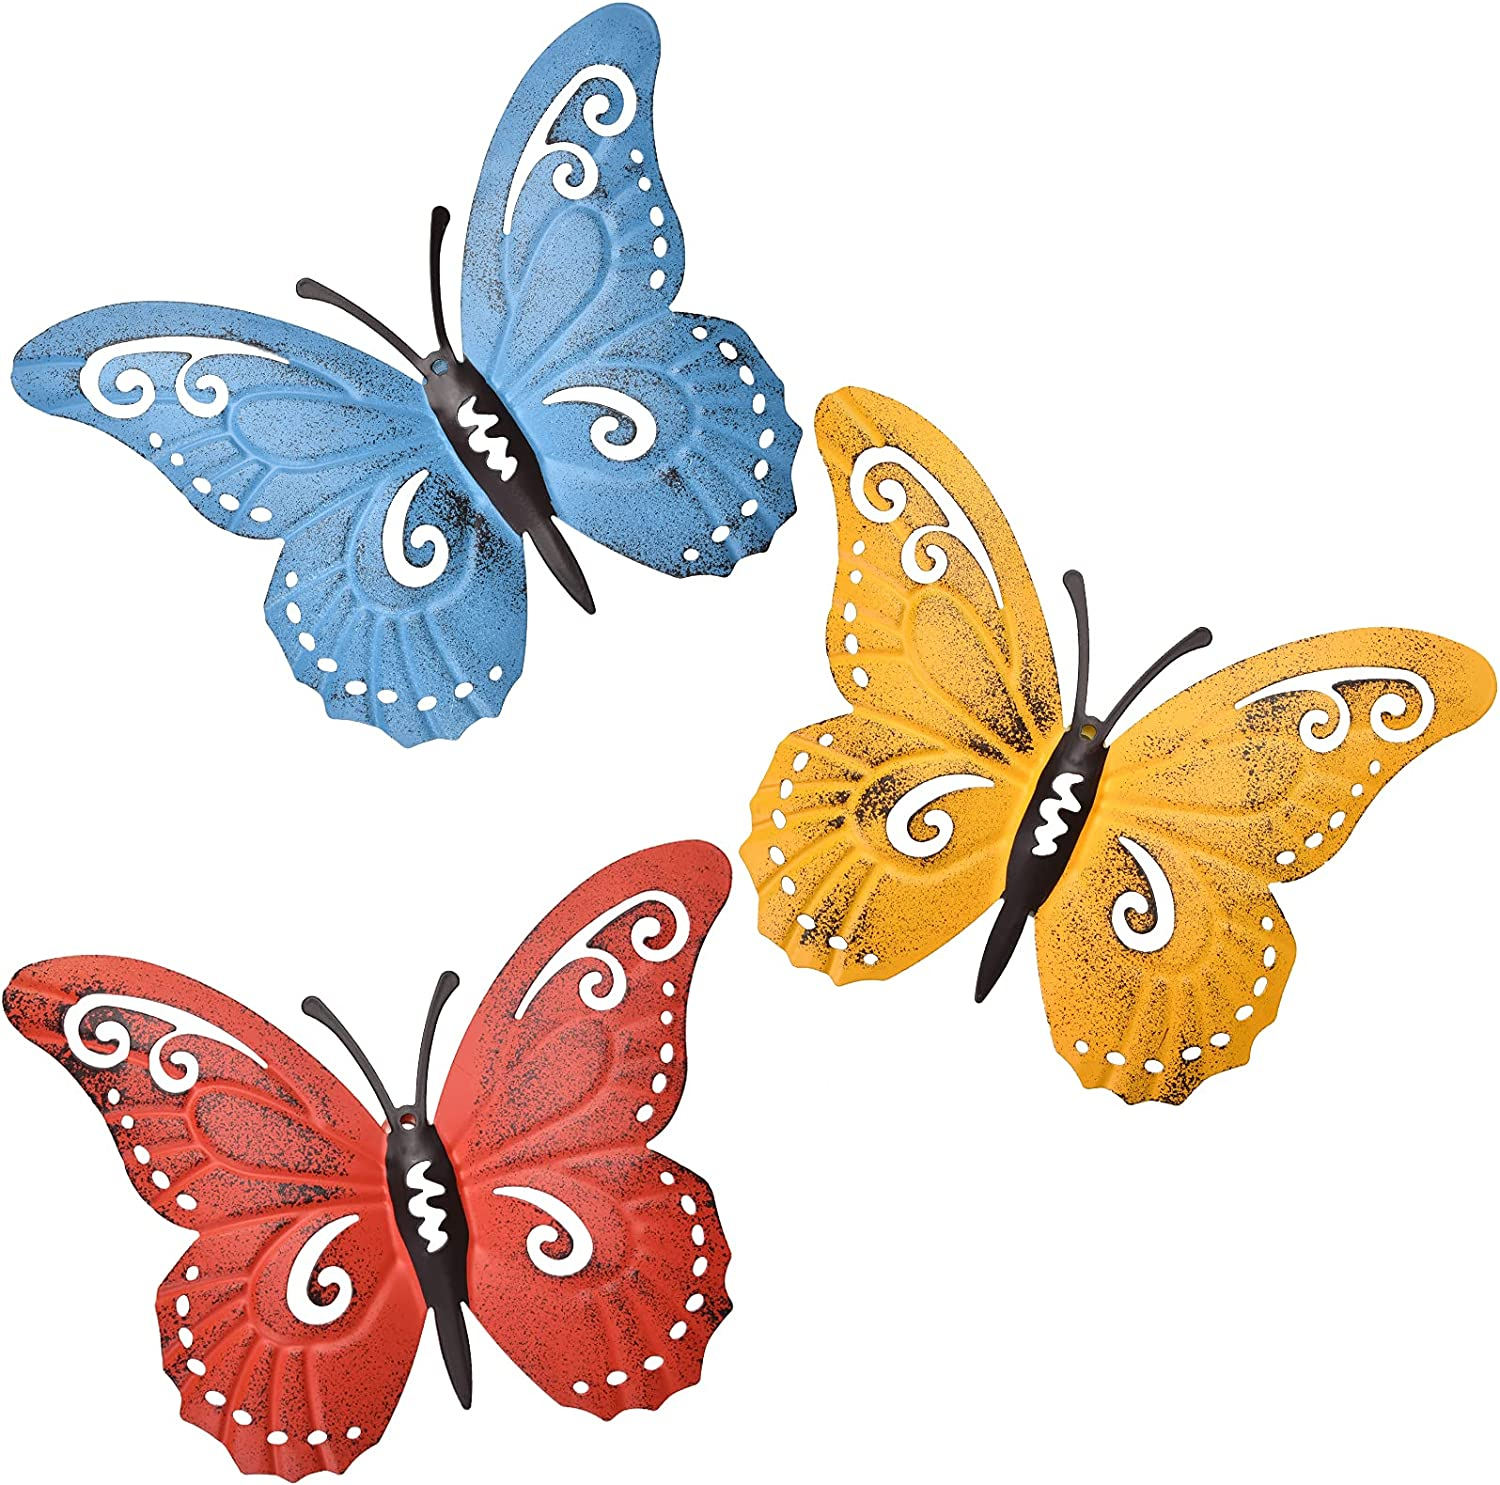 EASICUTI Metal Butterfly Wall Decor Butterfly Wall Art Hanging Sculpture for Indoor Outdoor Home Bathroom Living Room Bedroom Or Porch Patio Fence Yellow Red Blue 3 Pack 9.4